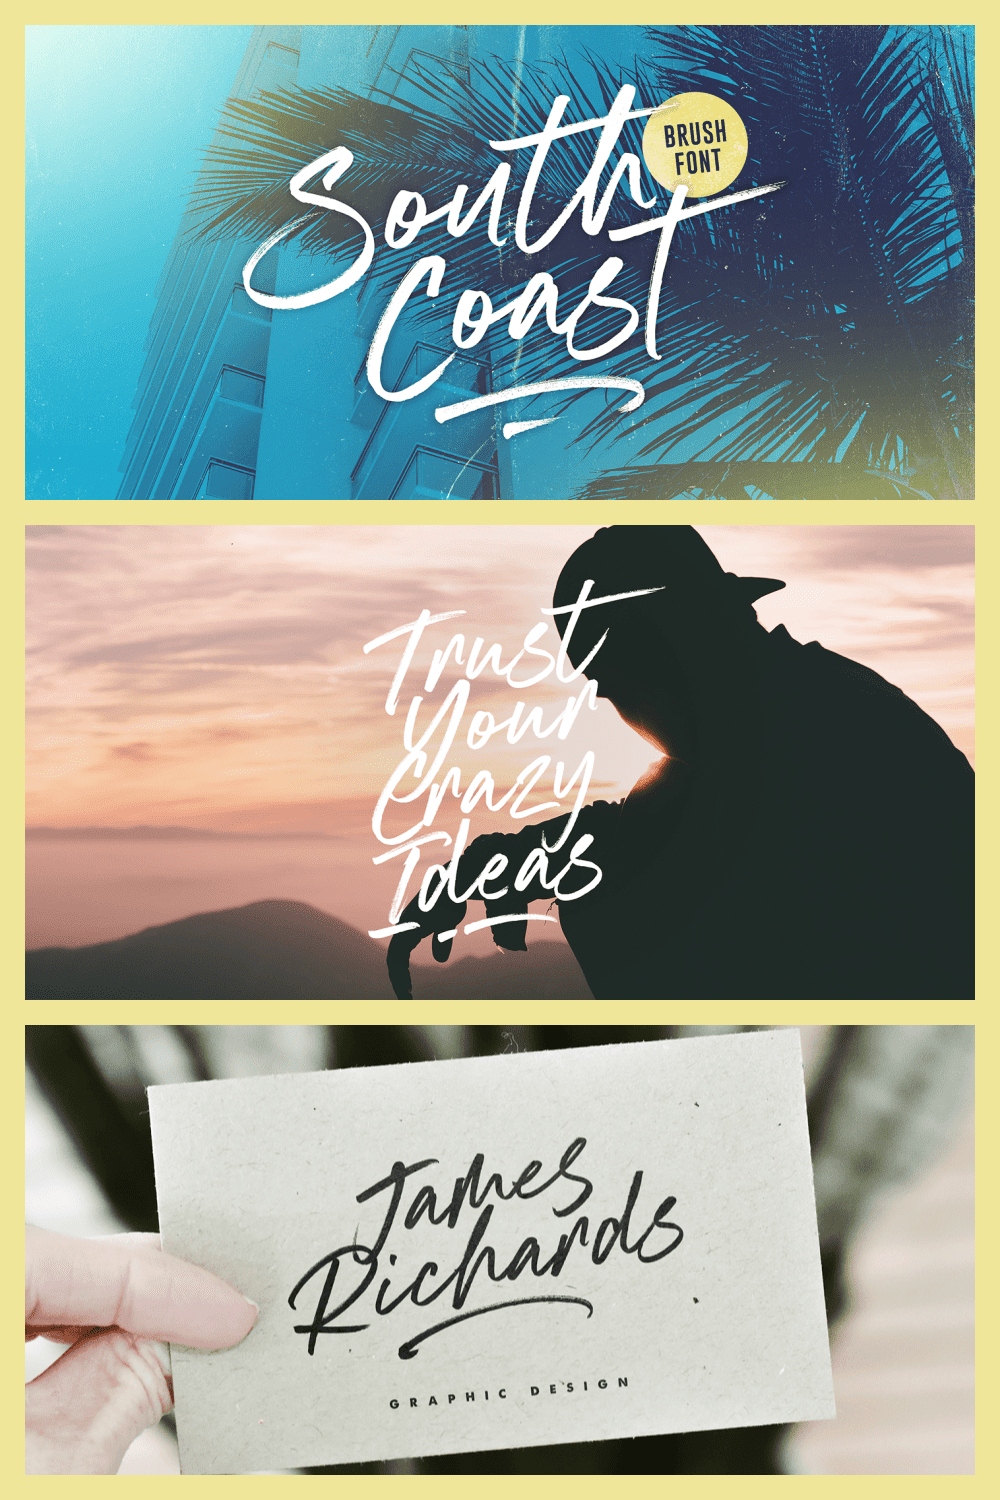 Cold ocean and surf font.